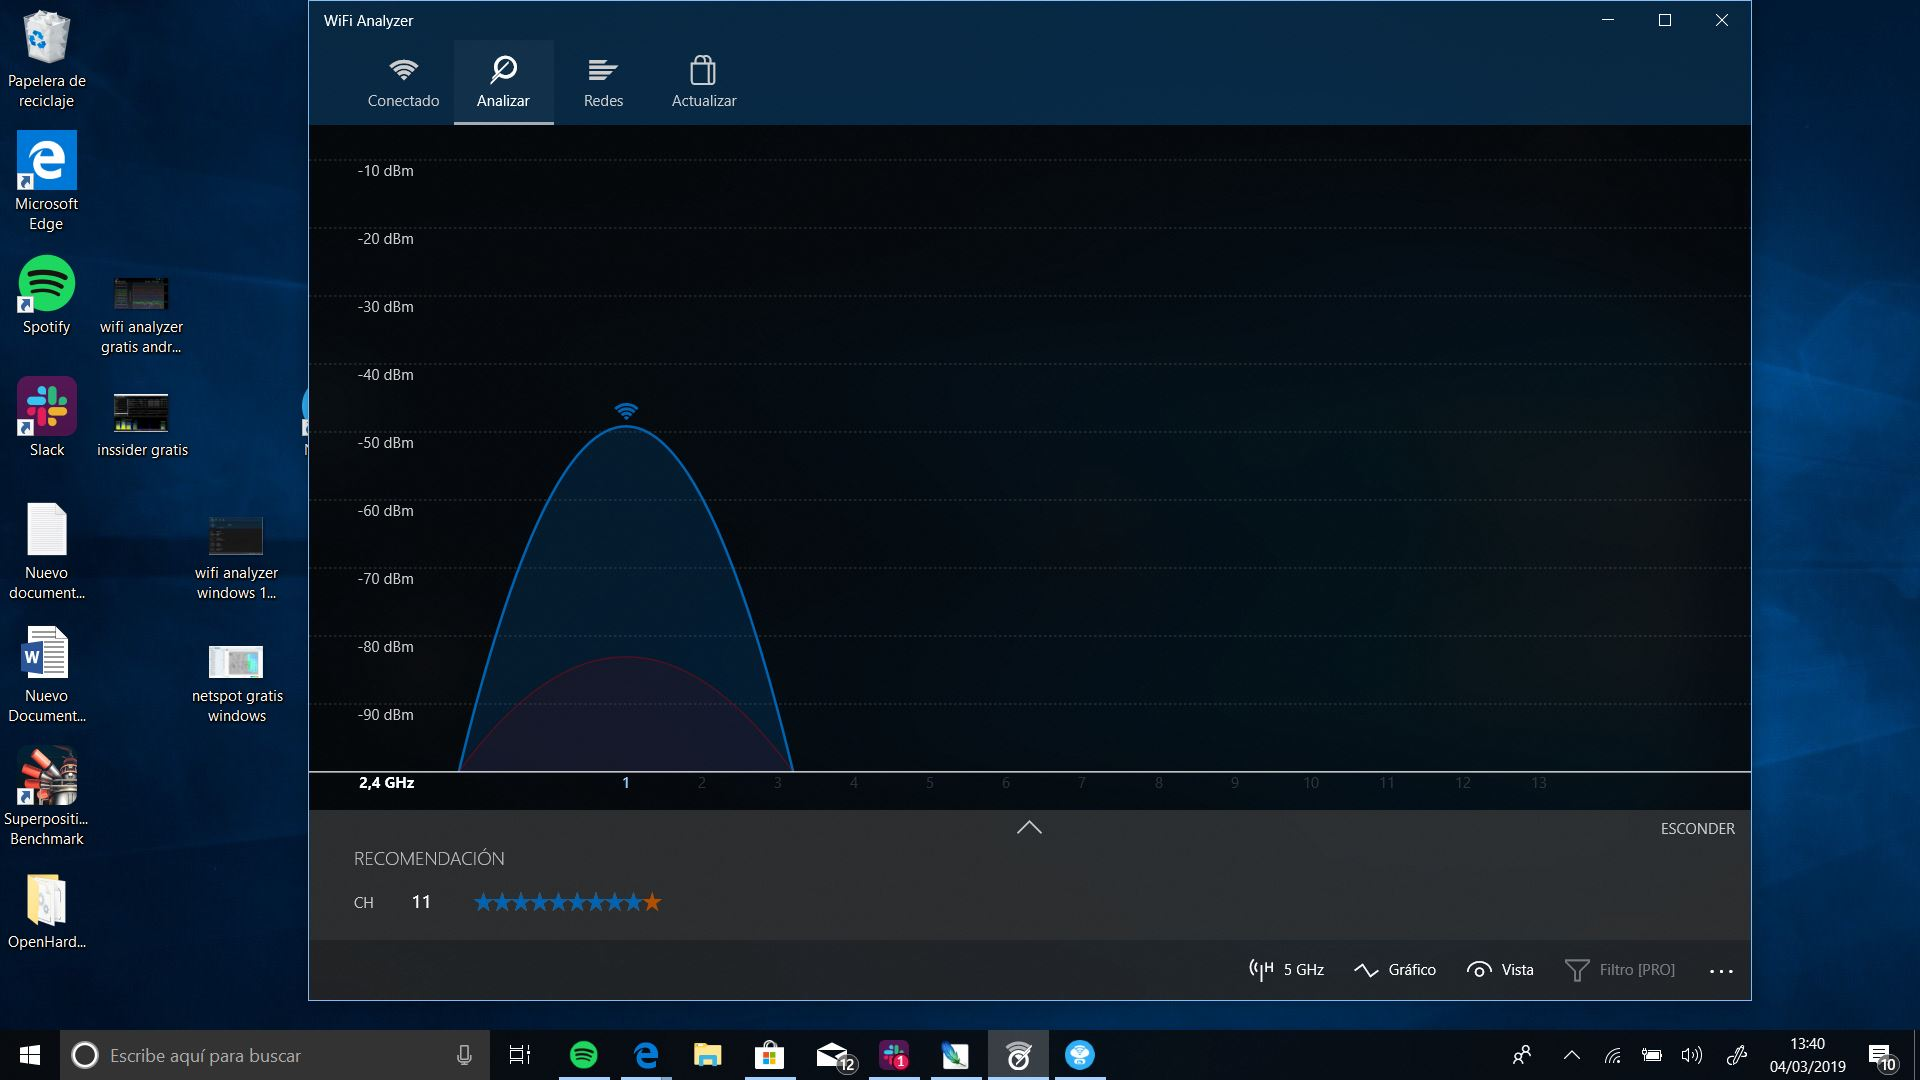 wifi analyzer windows 10 gratis 2